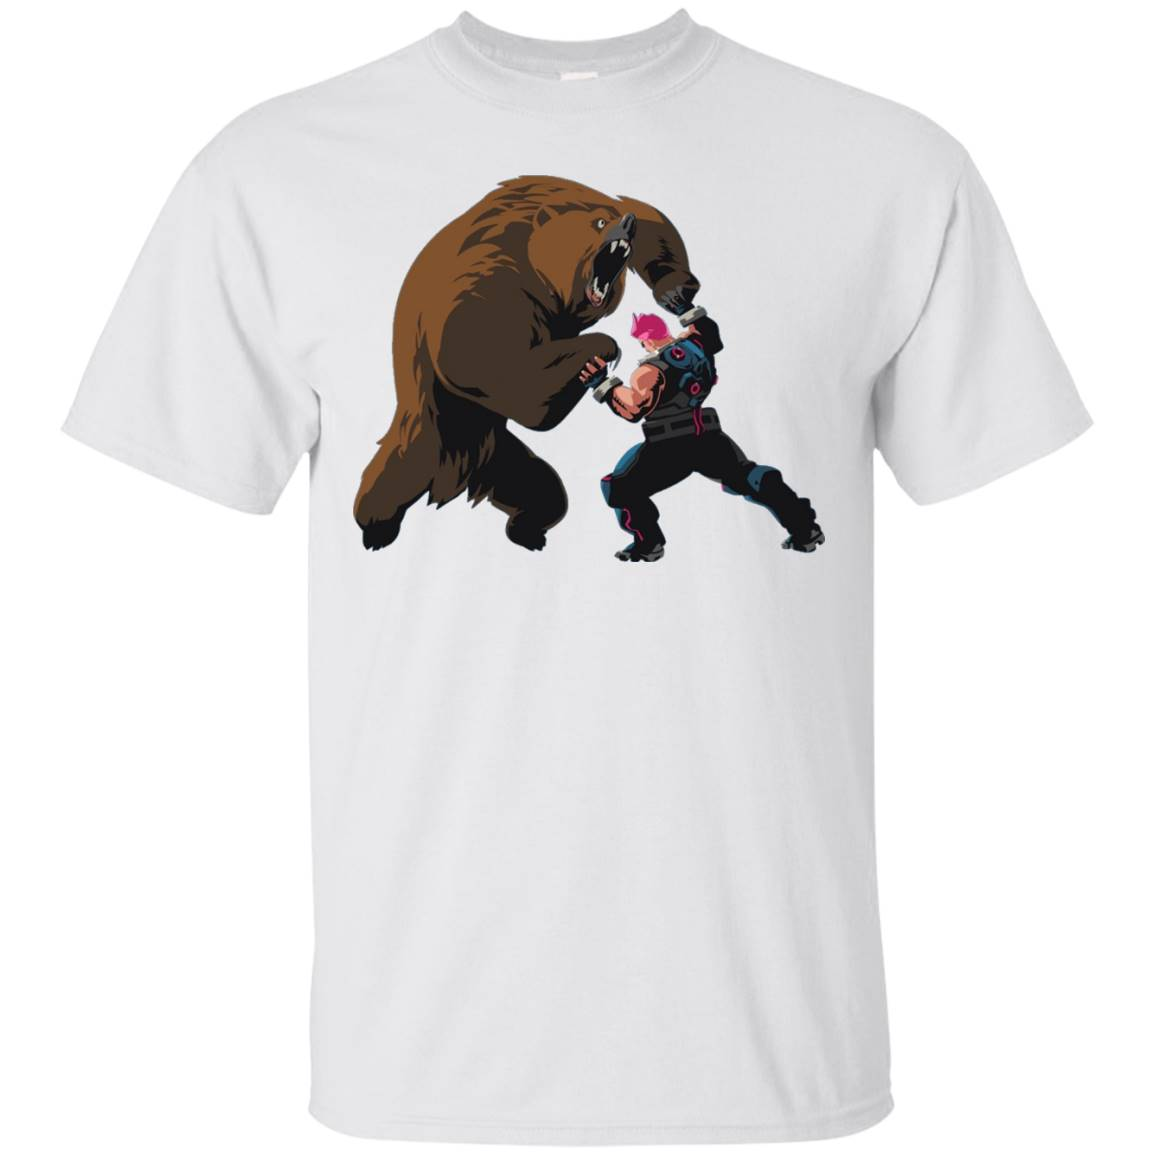 Overwatch Zarya Bear Spray Tee Shirt